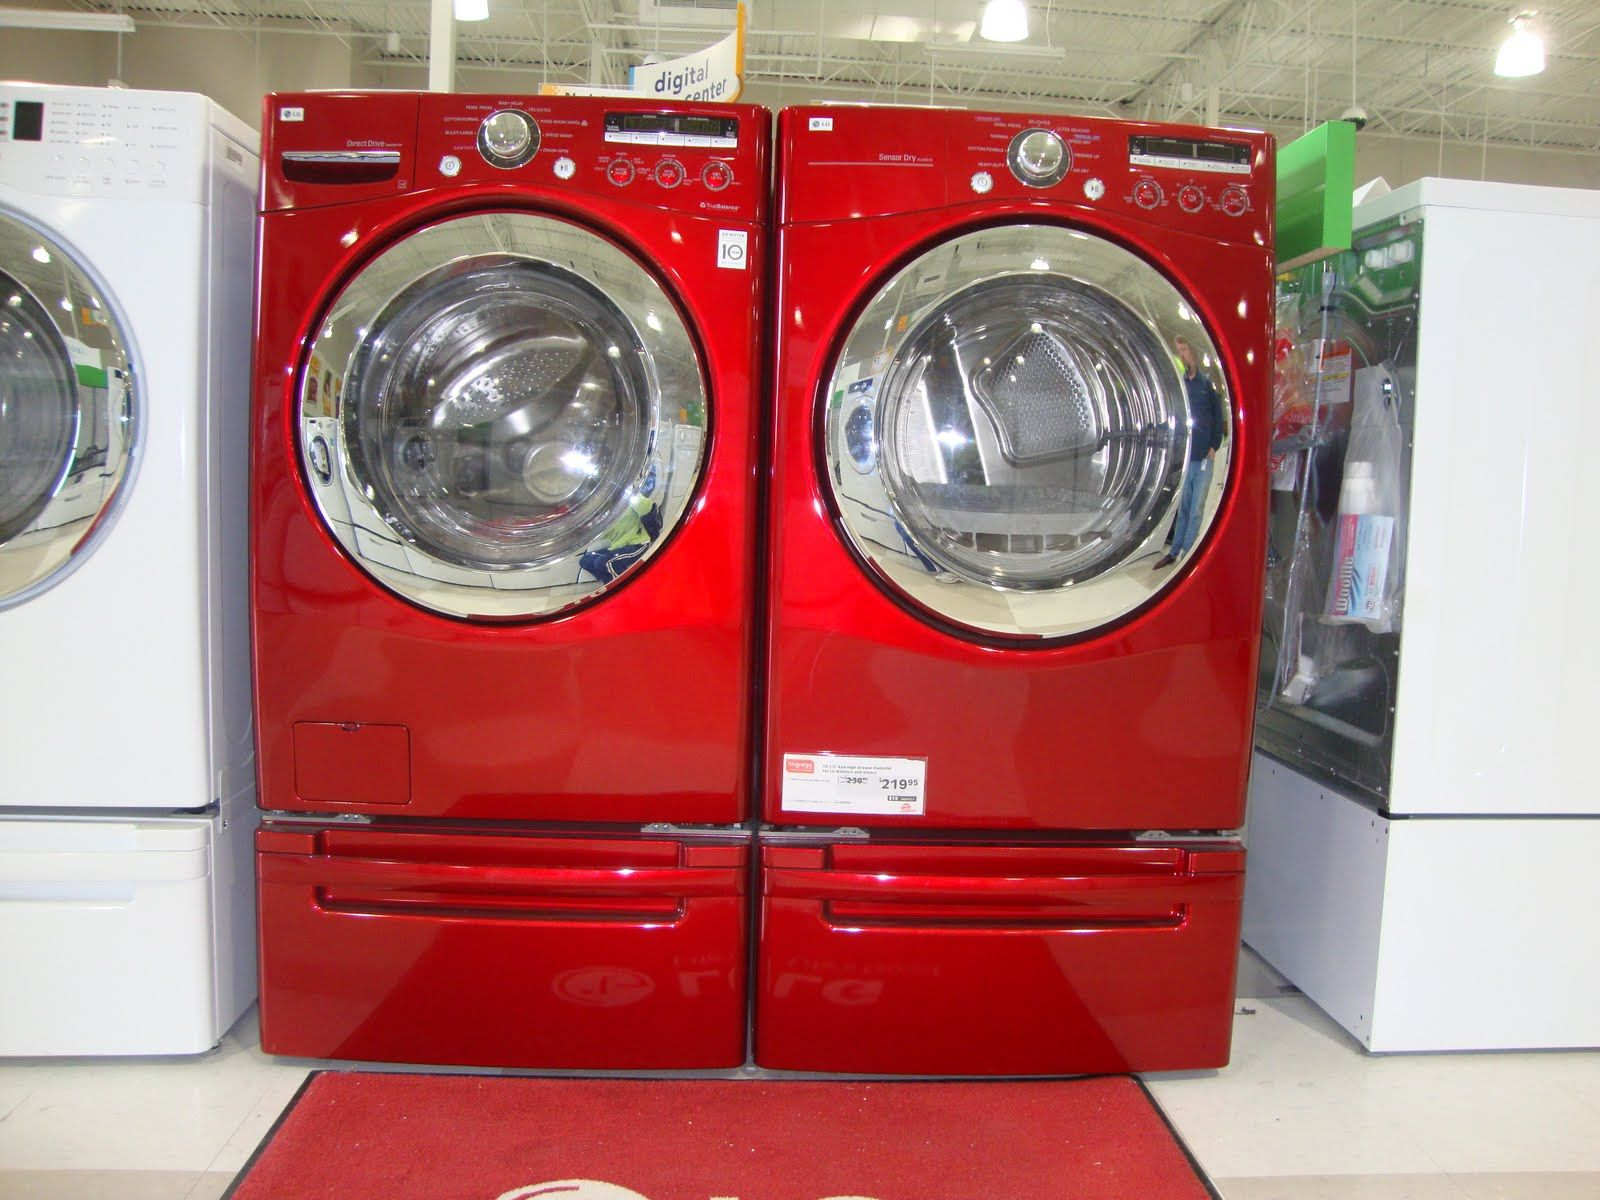 Colored Kitchen And Laundry Appliances Laundry Room Storage Red